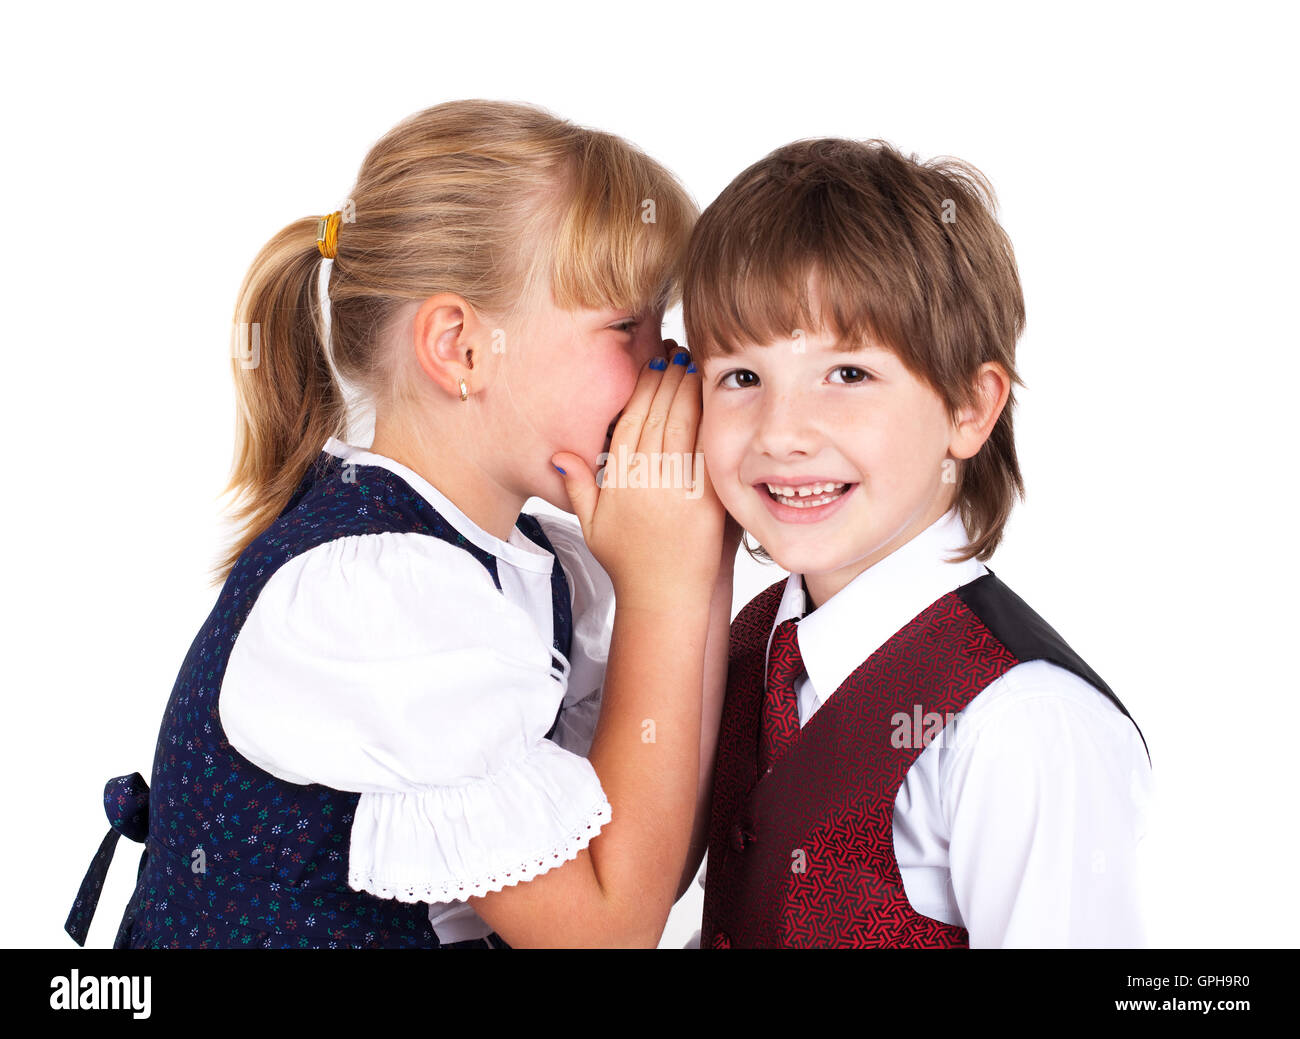 Two little kids telling secrets - Stock Image